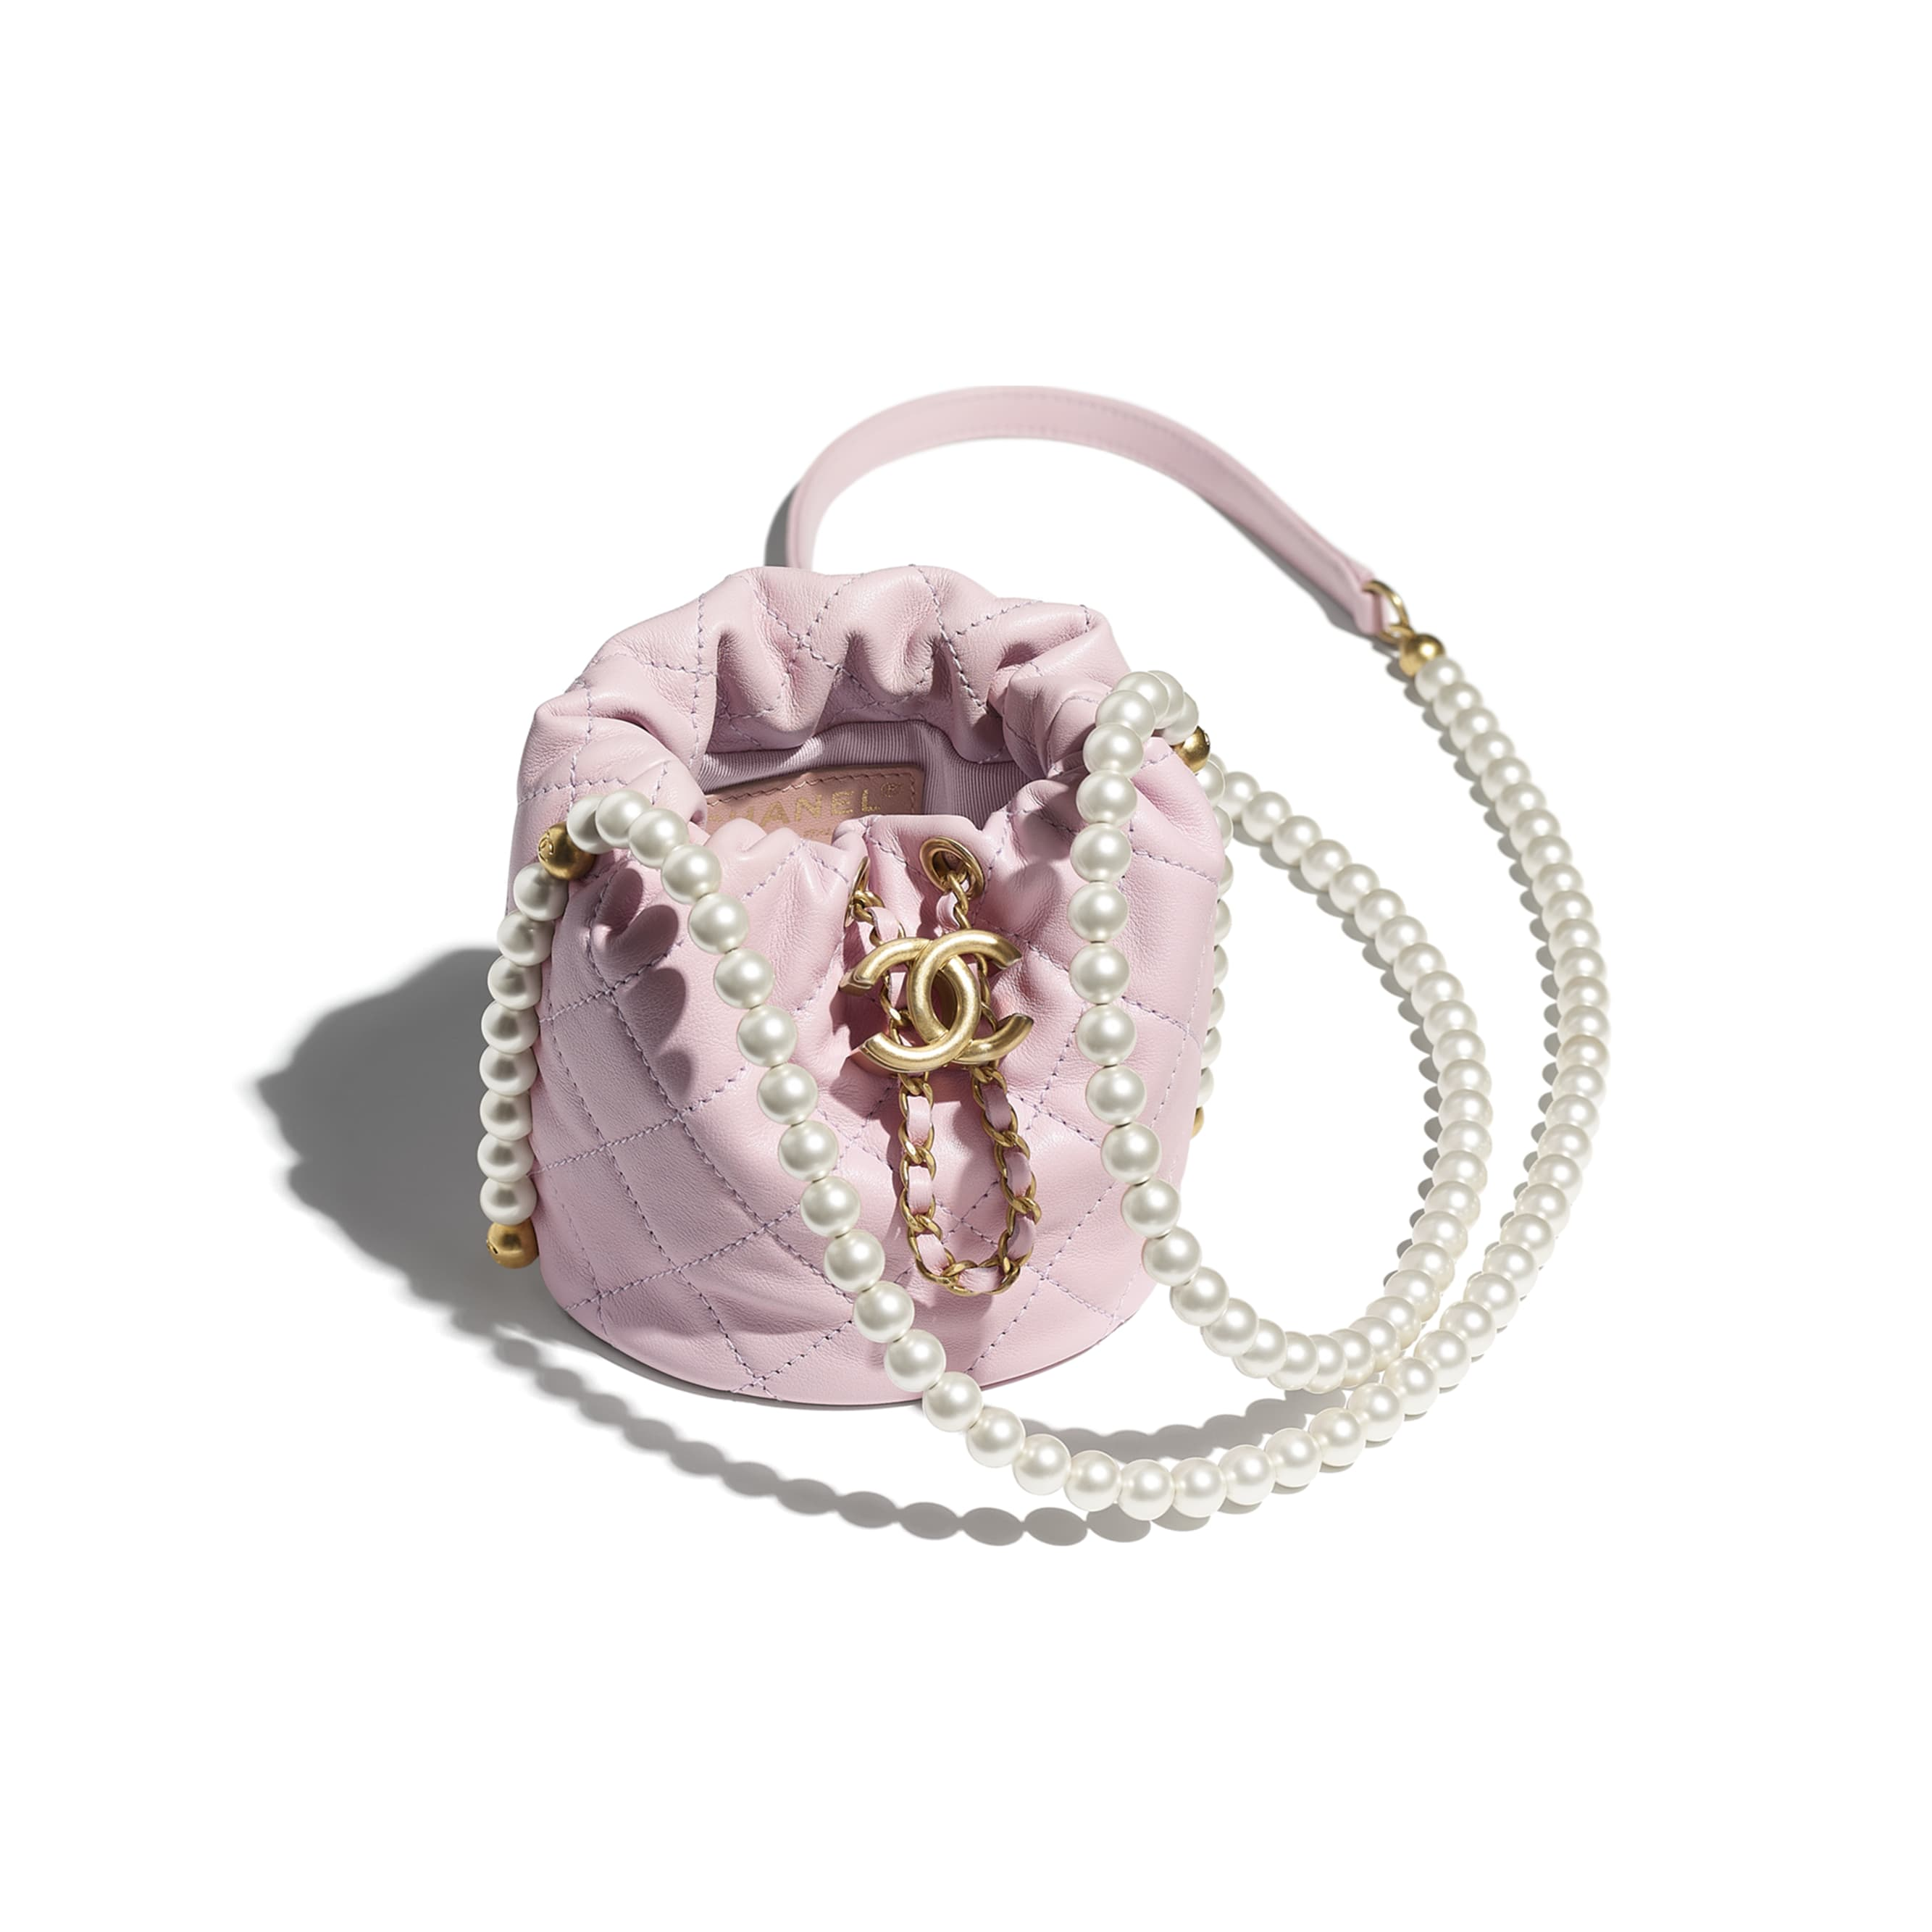 Mini Drawstring Bag - Light Pink - Calfskin, Imitation Pearls & Gold-Tone Metal - CHANEL - Other view - see standard sized version